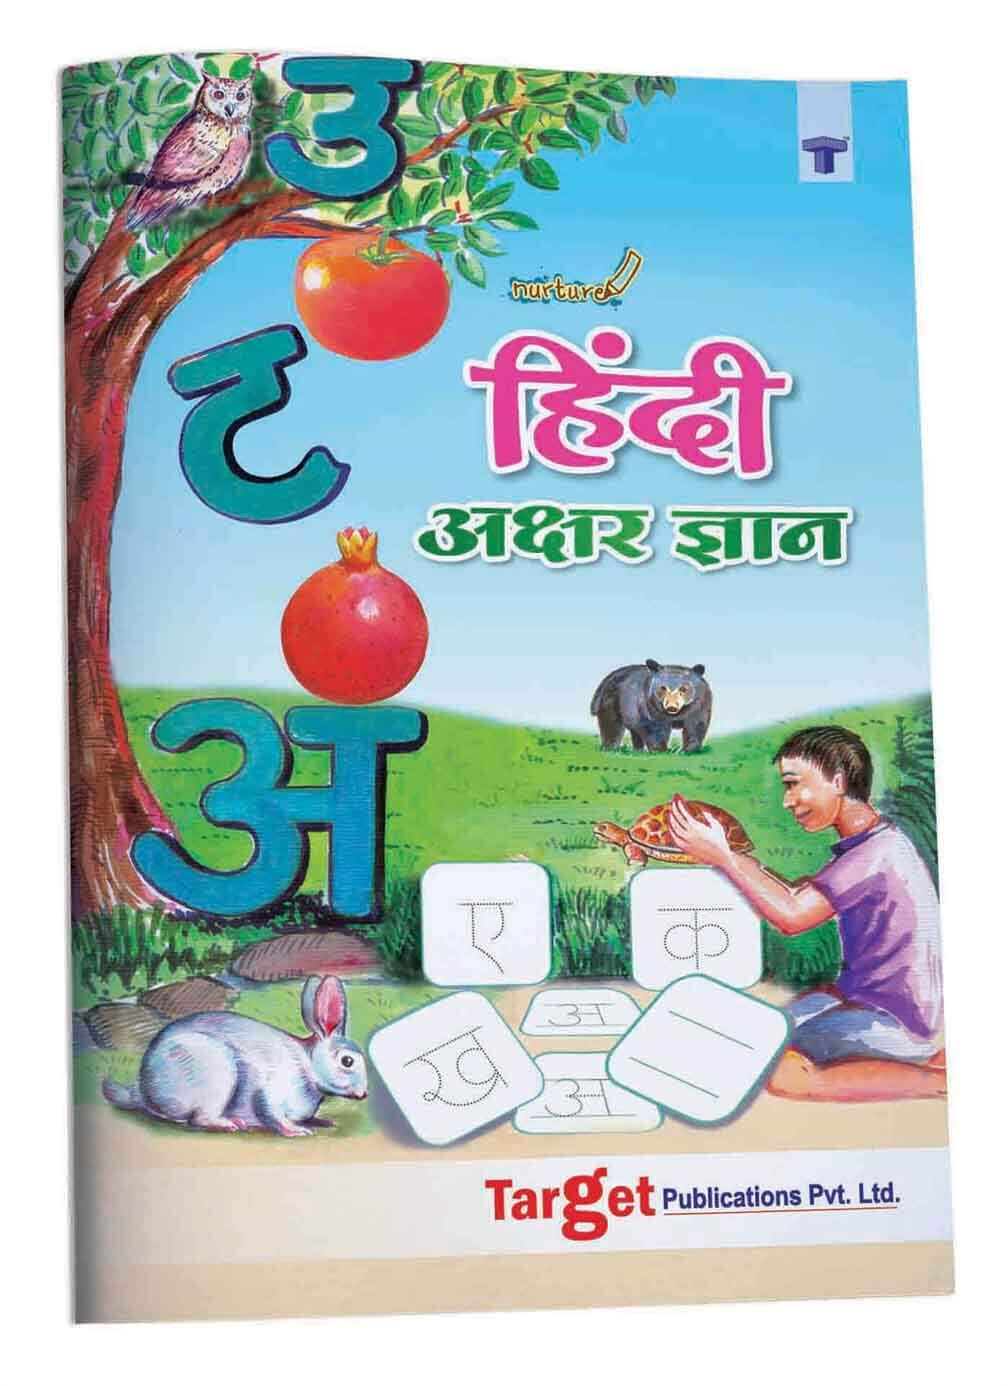 Buy Nurture Hindi Language Akshar Gyan Hindi Alphabet And Words Learning Book For Kids 4 To 6 Hindi Varnamala Reading And Writing Book With Pictures For Children 47